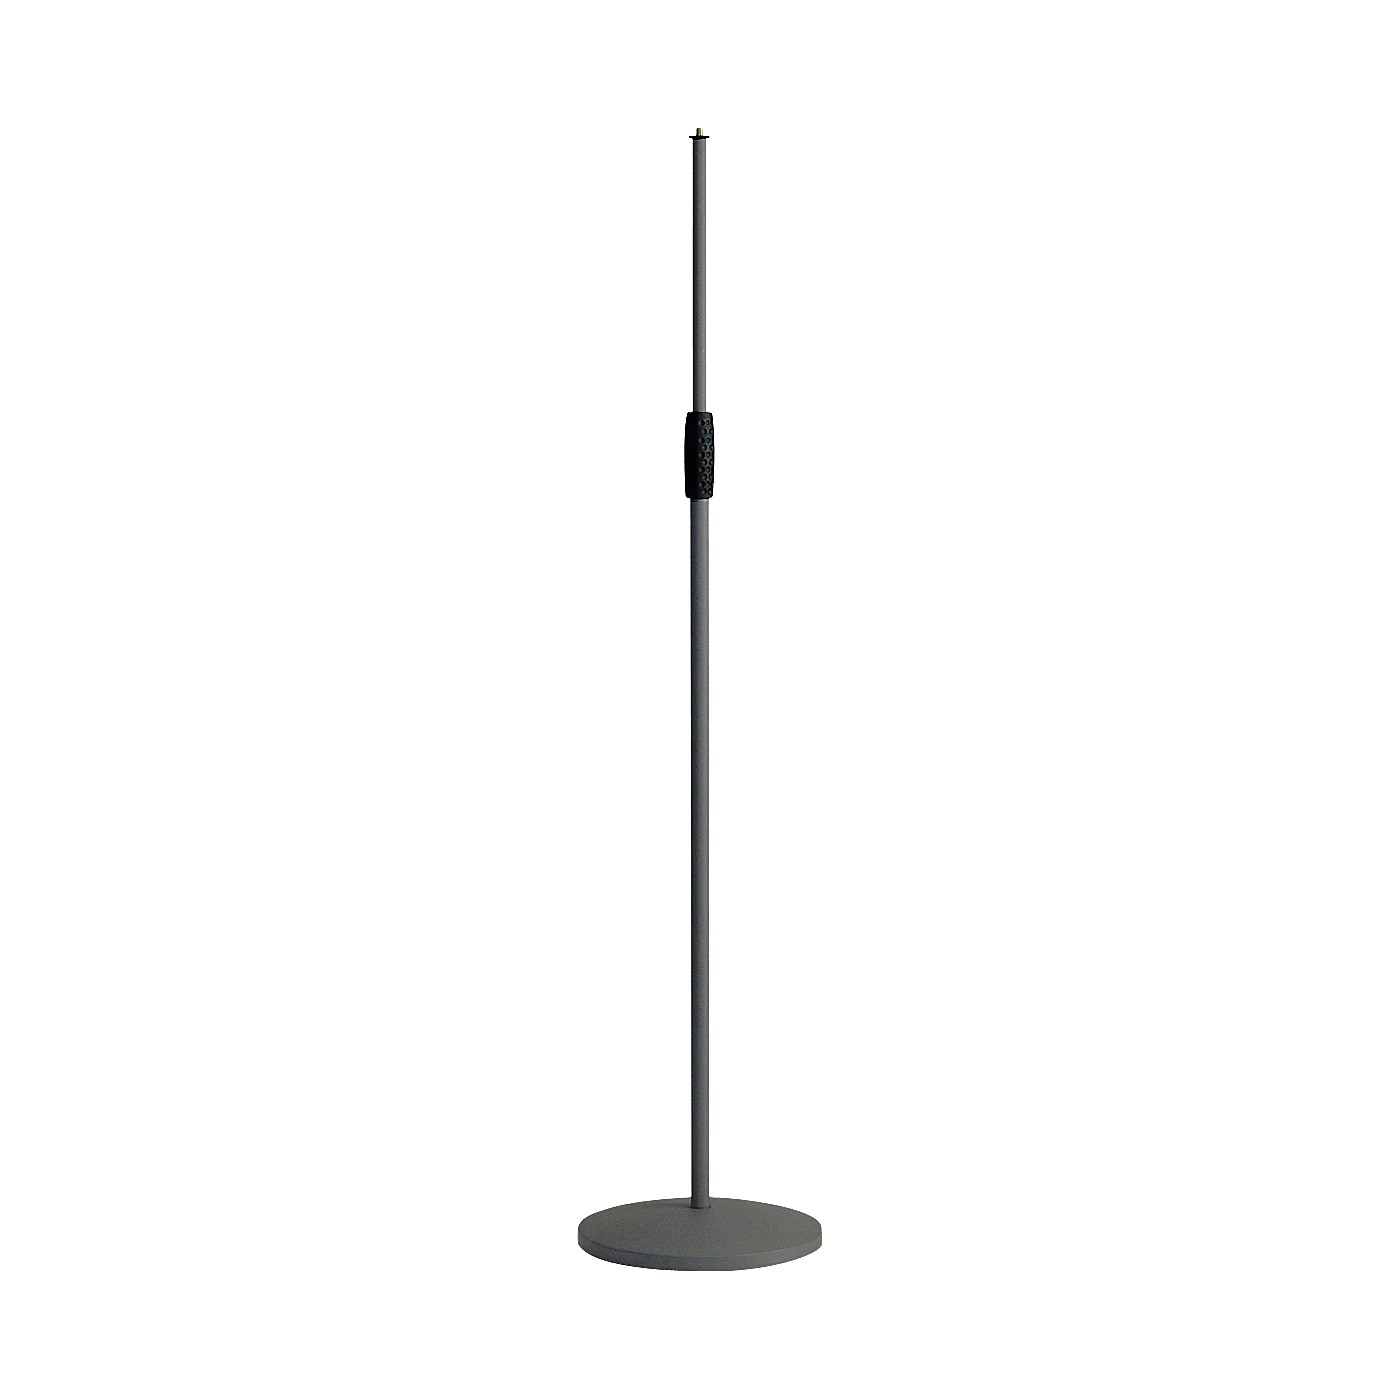 K&M 26010-500-55 Microphone Stand with Cast Iron Base thumbnail